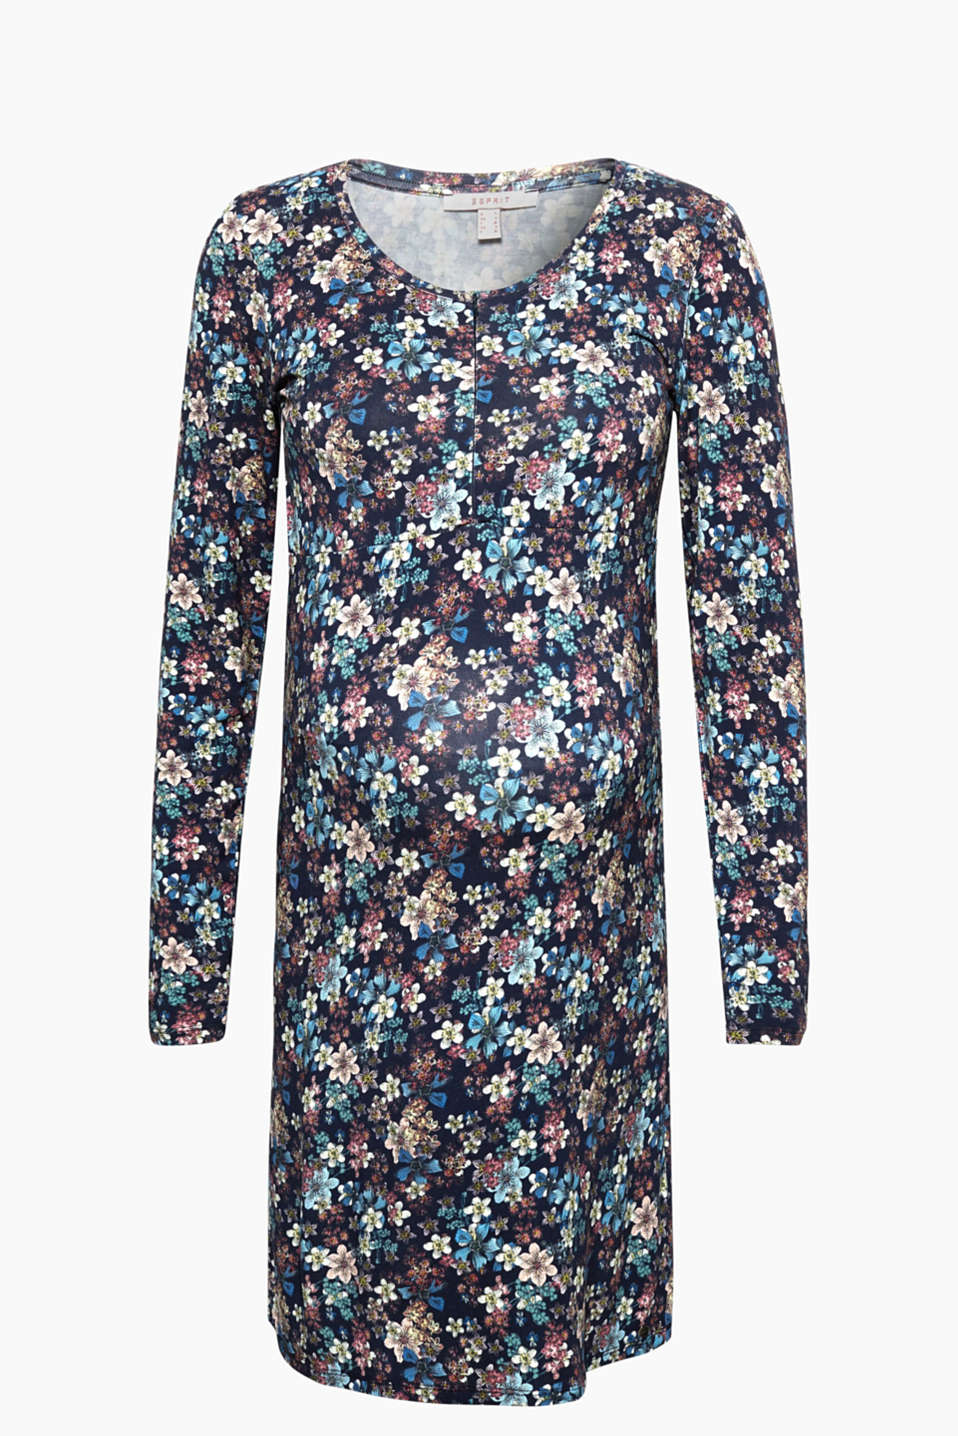 With a nursing function thanks to the built-in bodice in the front and a centre zip: Stretch jersey dress with a floral print